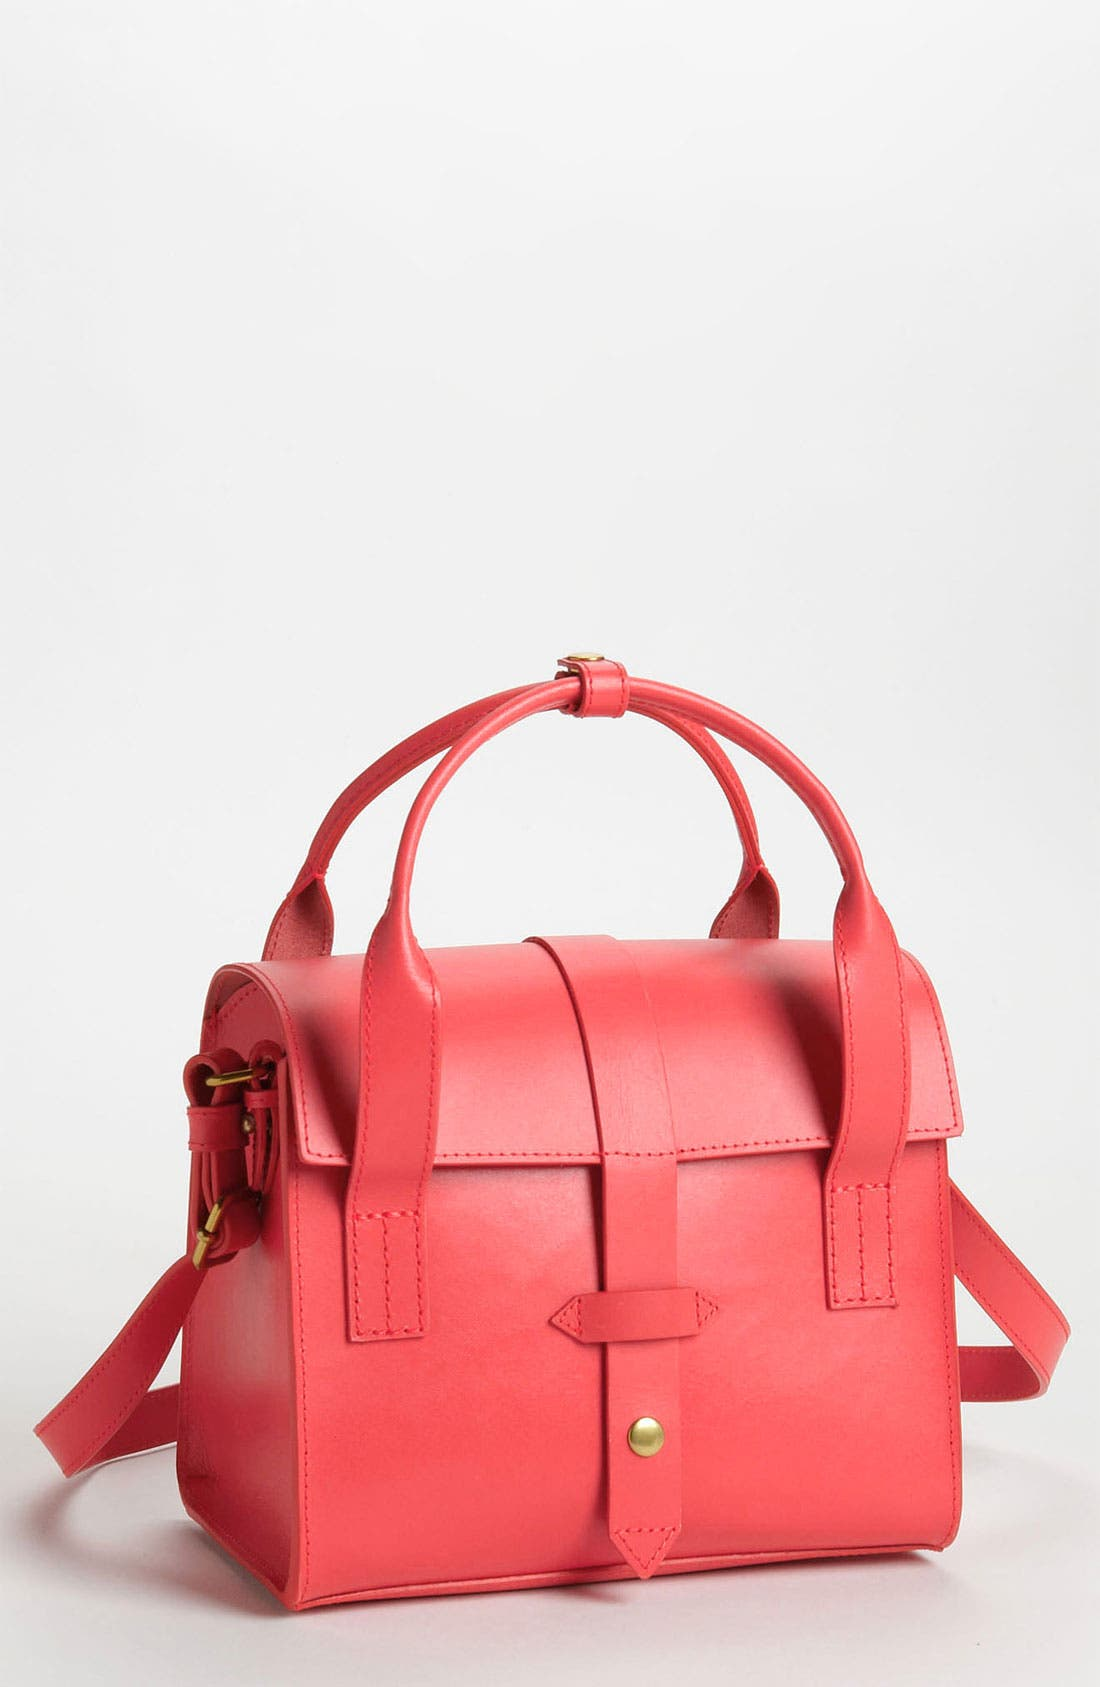 Alternate Image 1 Selected - IIIBeCa by Joy Gryson 'North Moore' Satchel